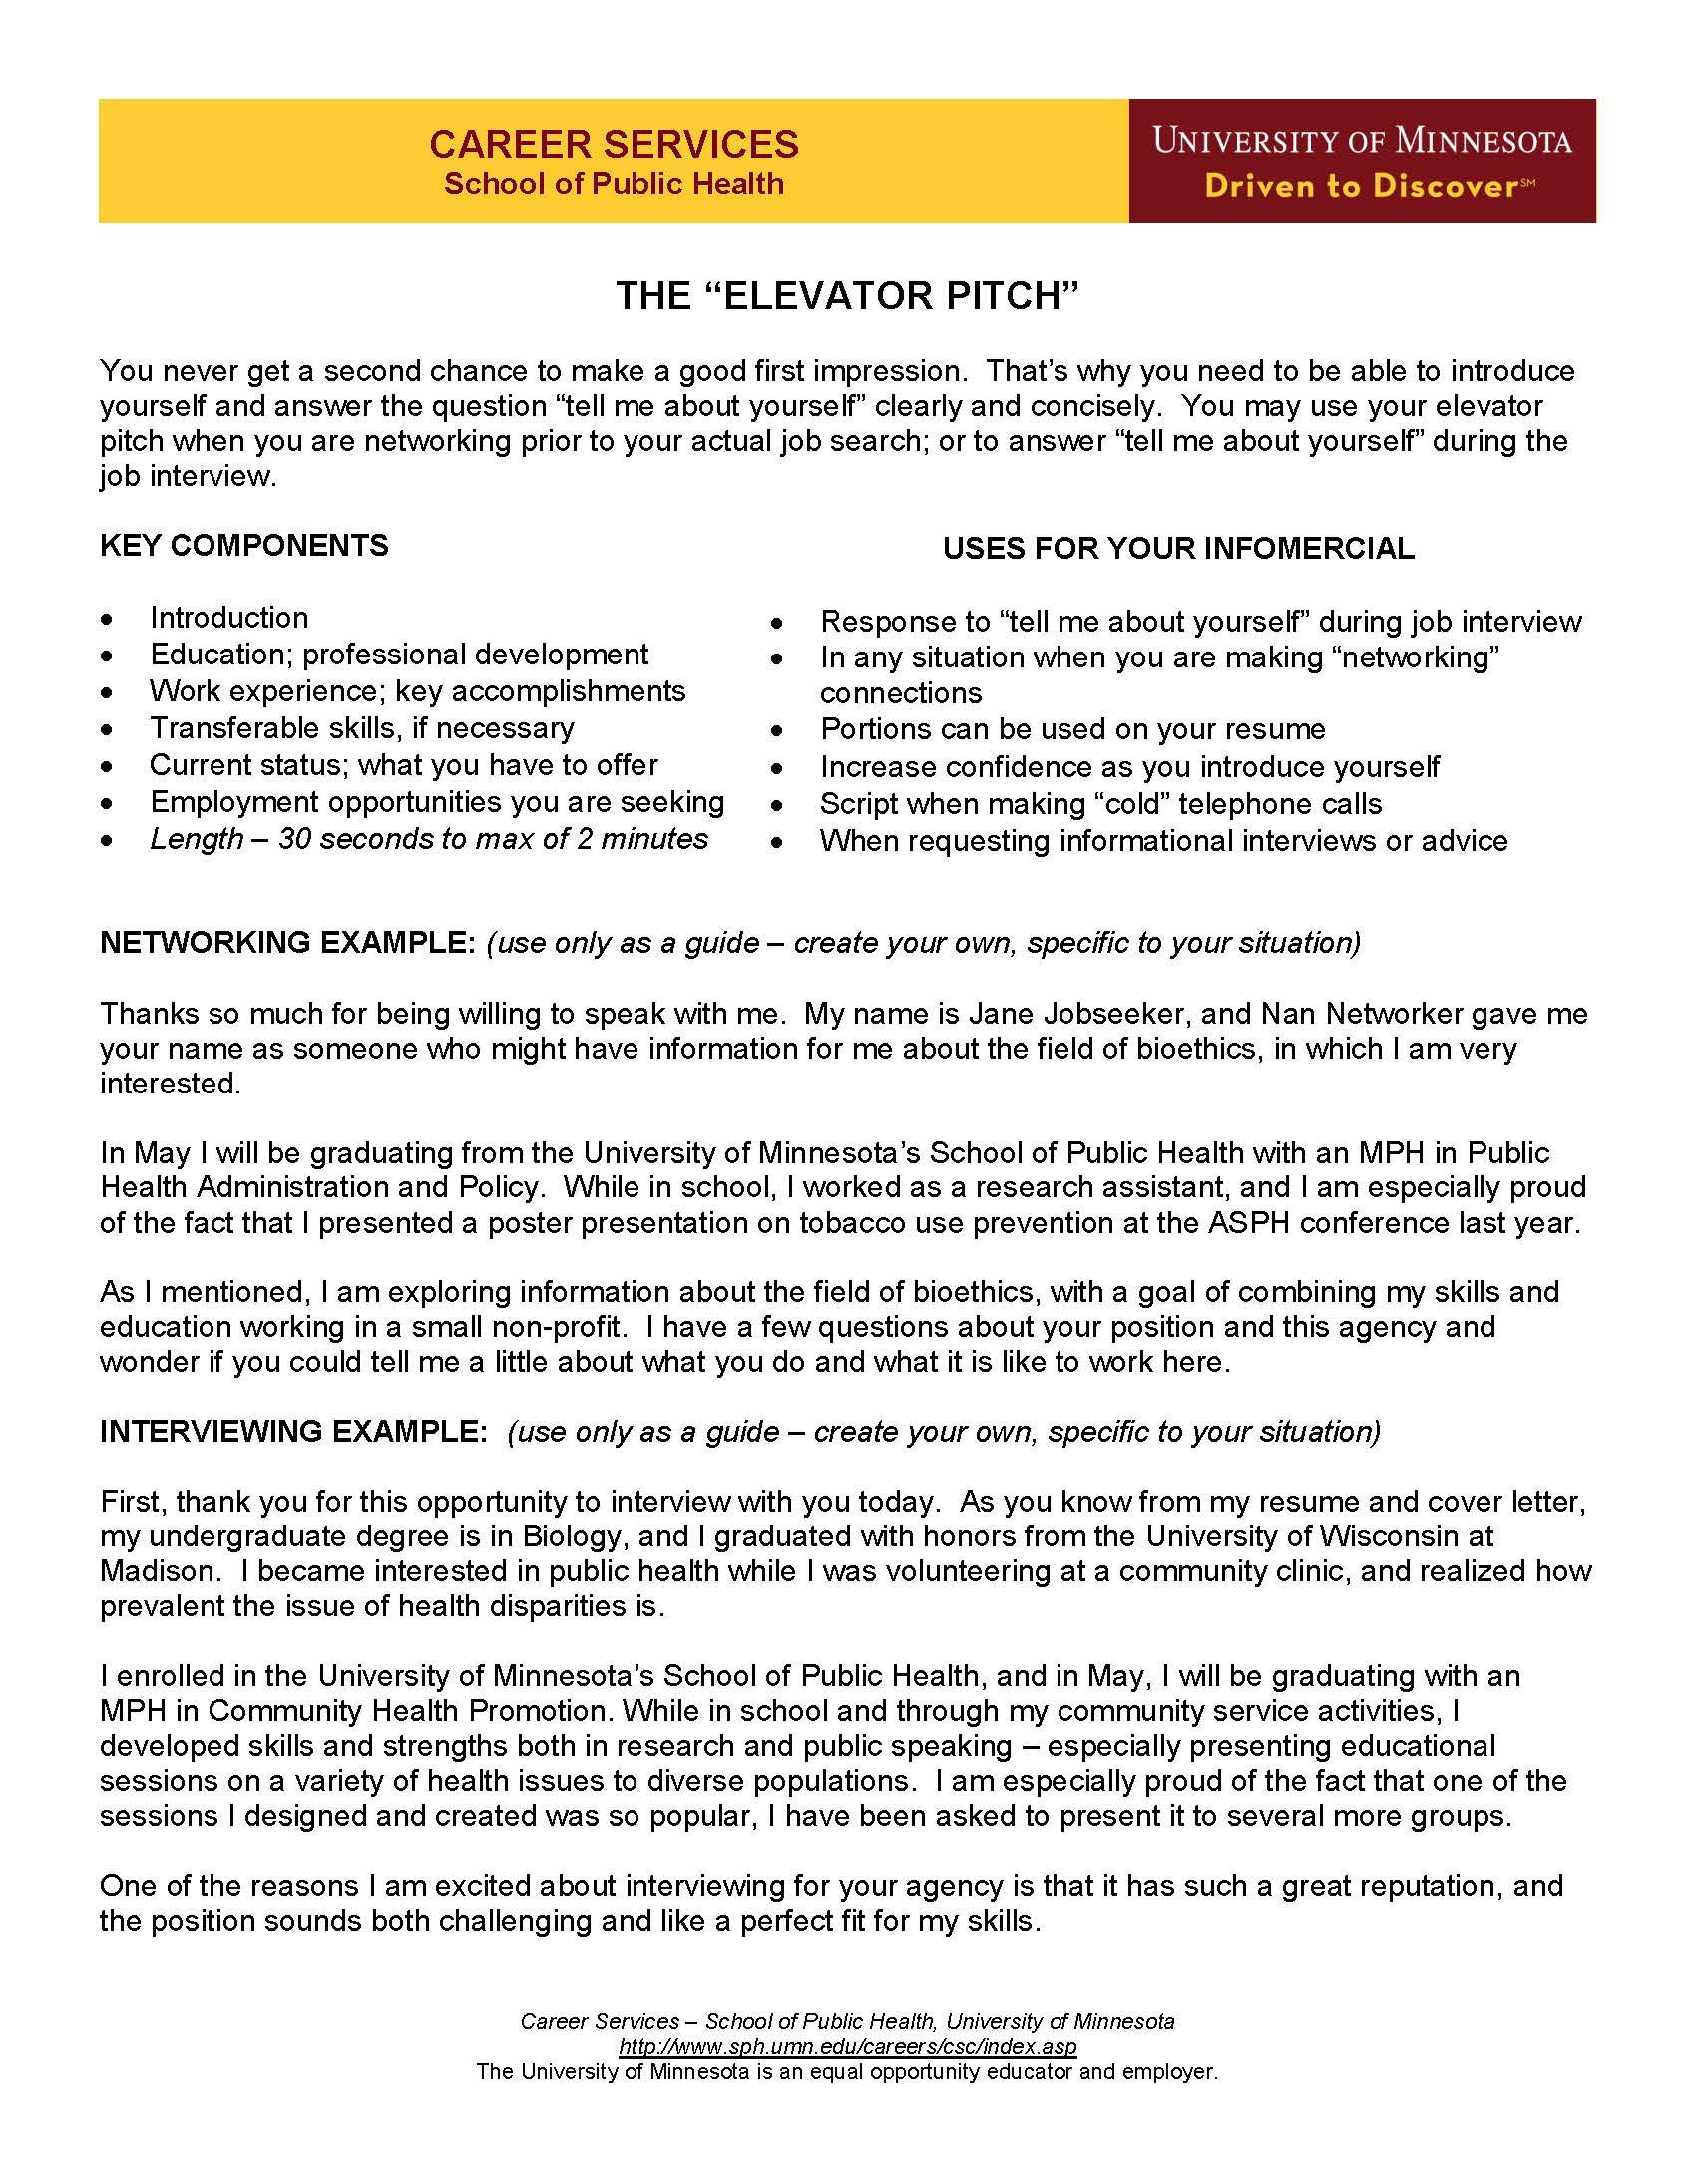 Find My Resume Elevator Pitch Networking Guide Pinterest Pitch Job